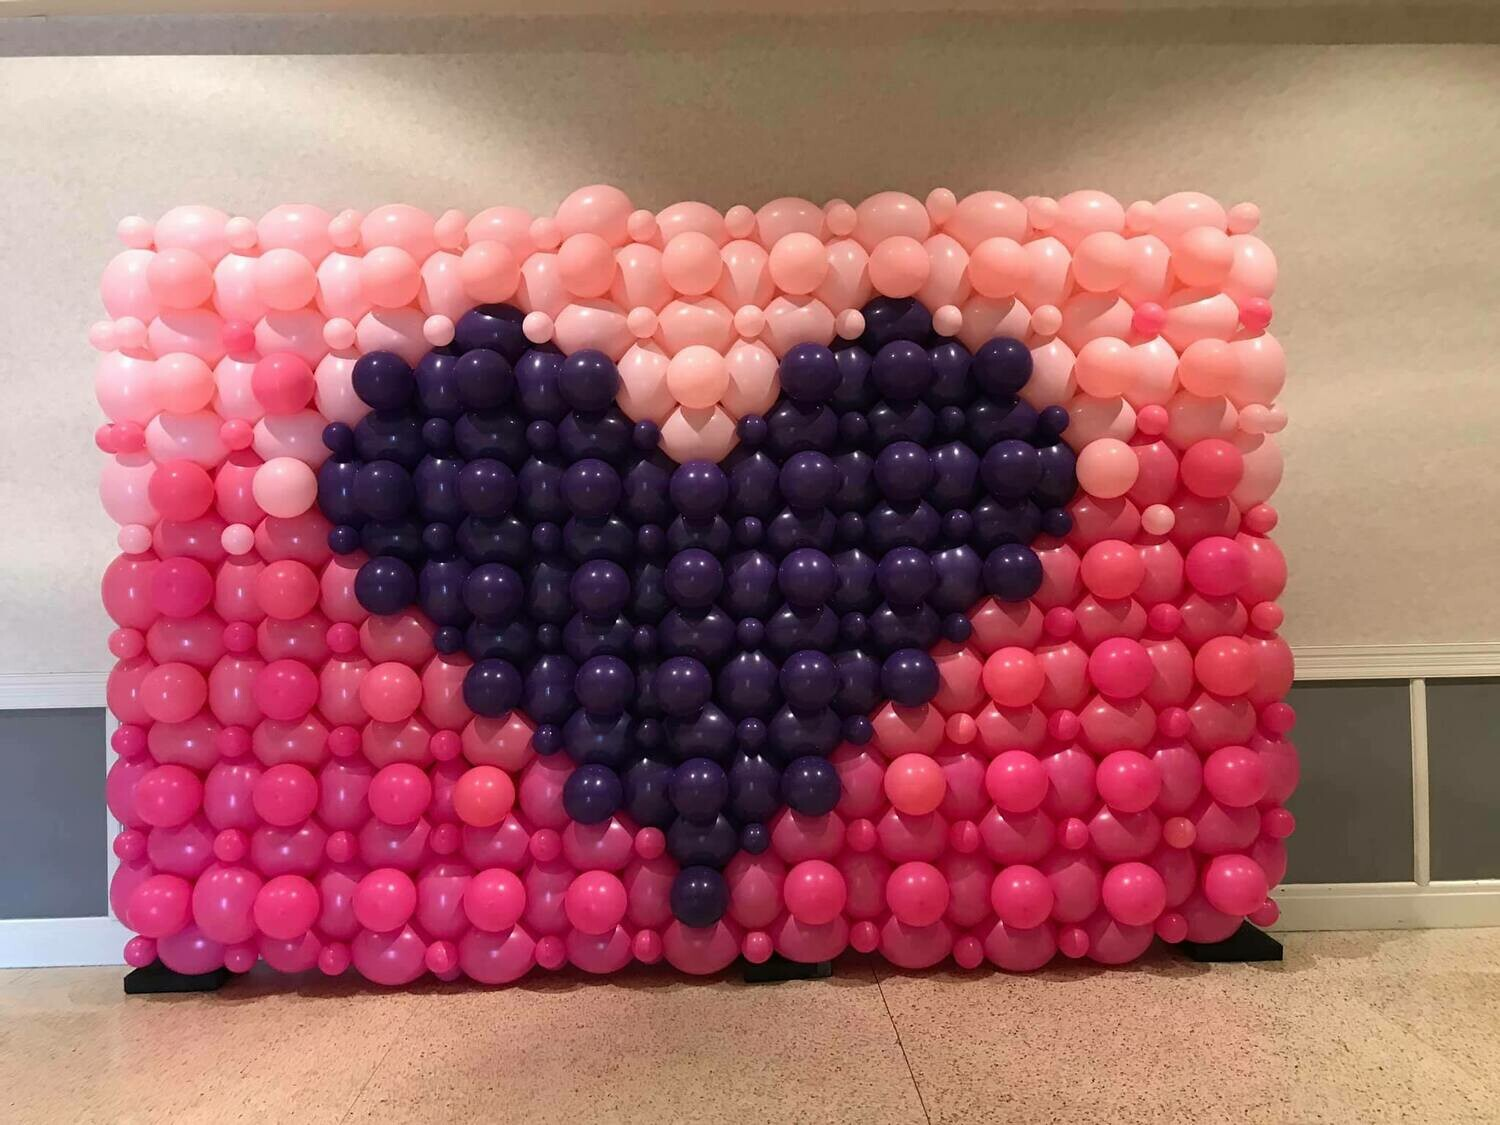 Balloon walls, traditional single layer (even sized bubbles)